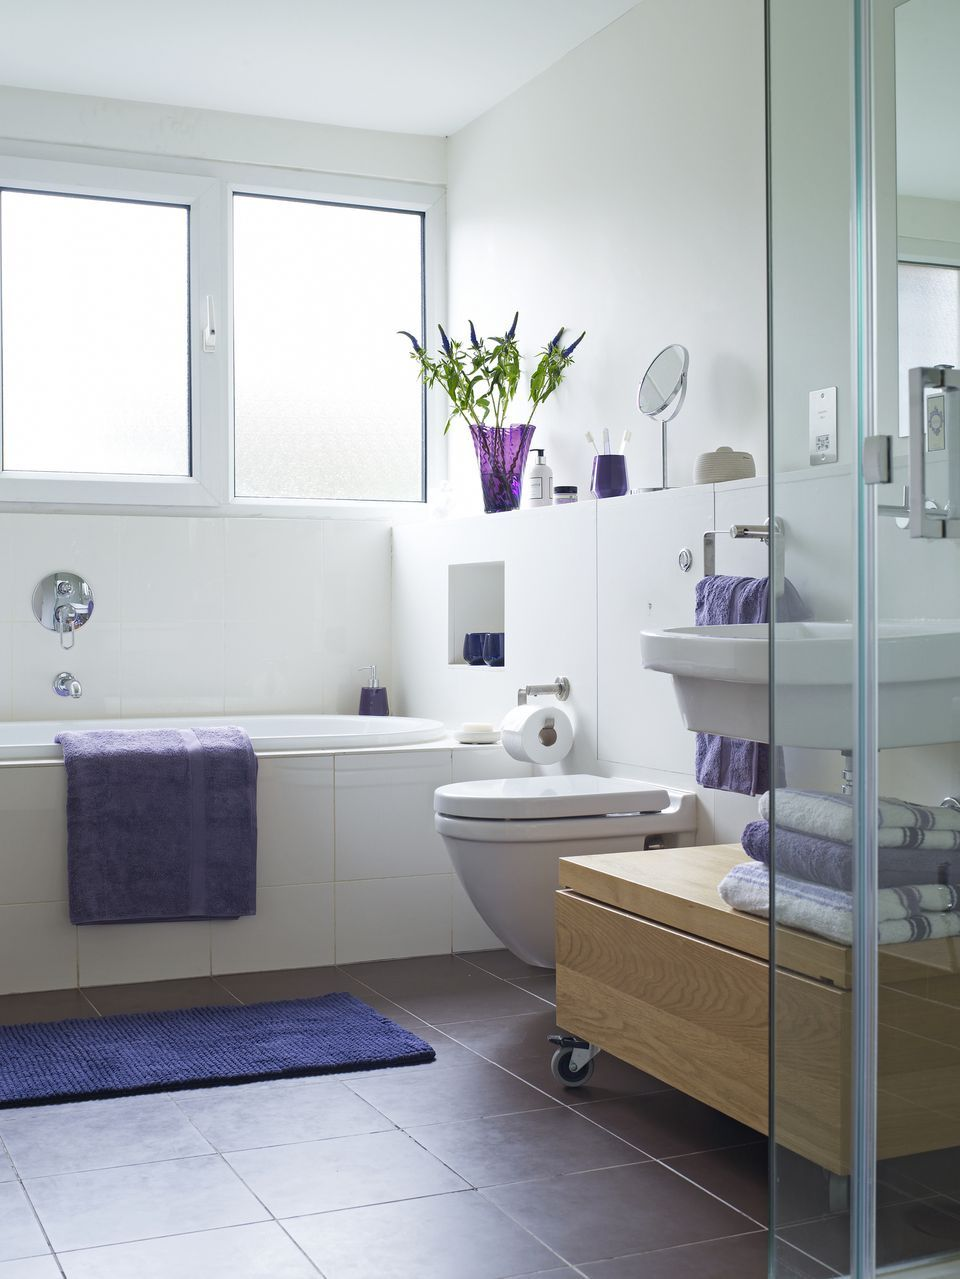 Small Bathroom Images - Interior Paint Color Ideas Check more at ...